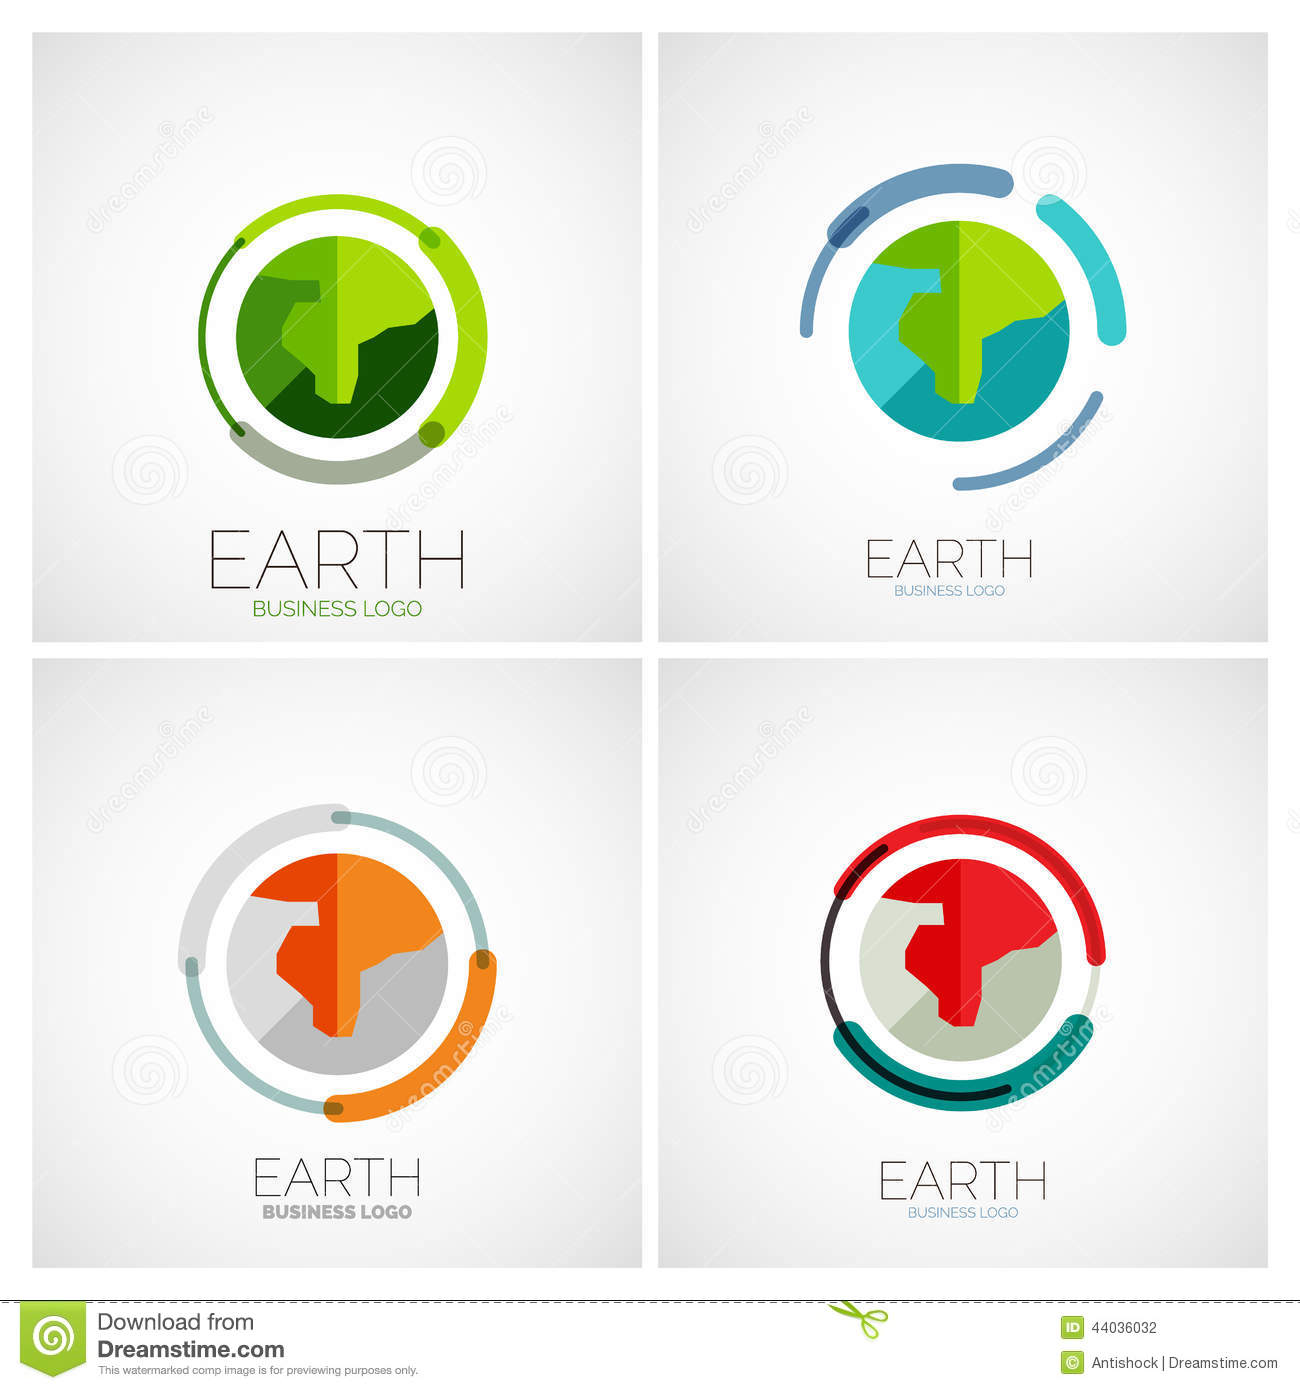 Earth company logo design stock vector image of creative for Design company